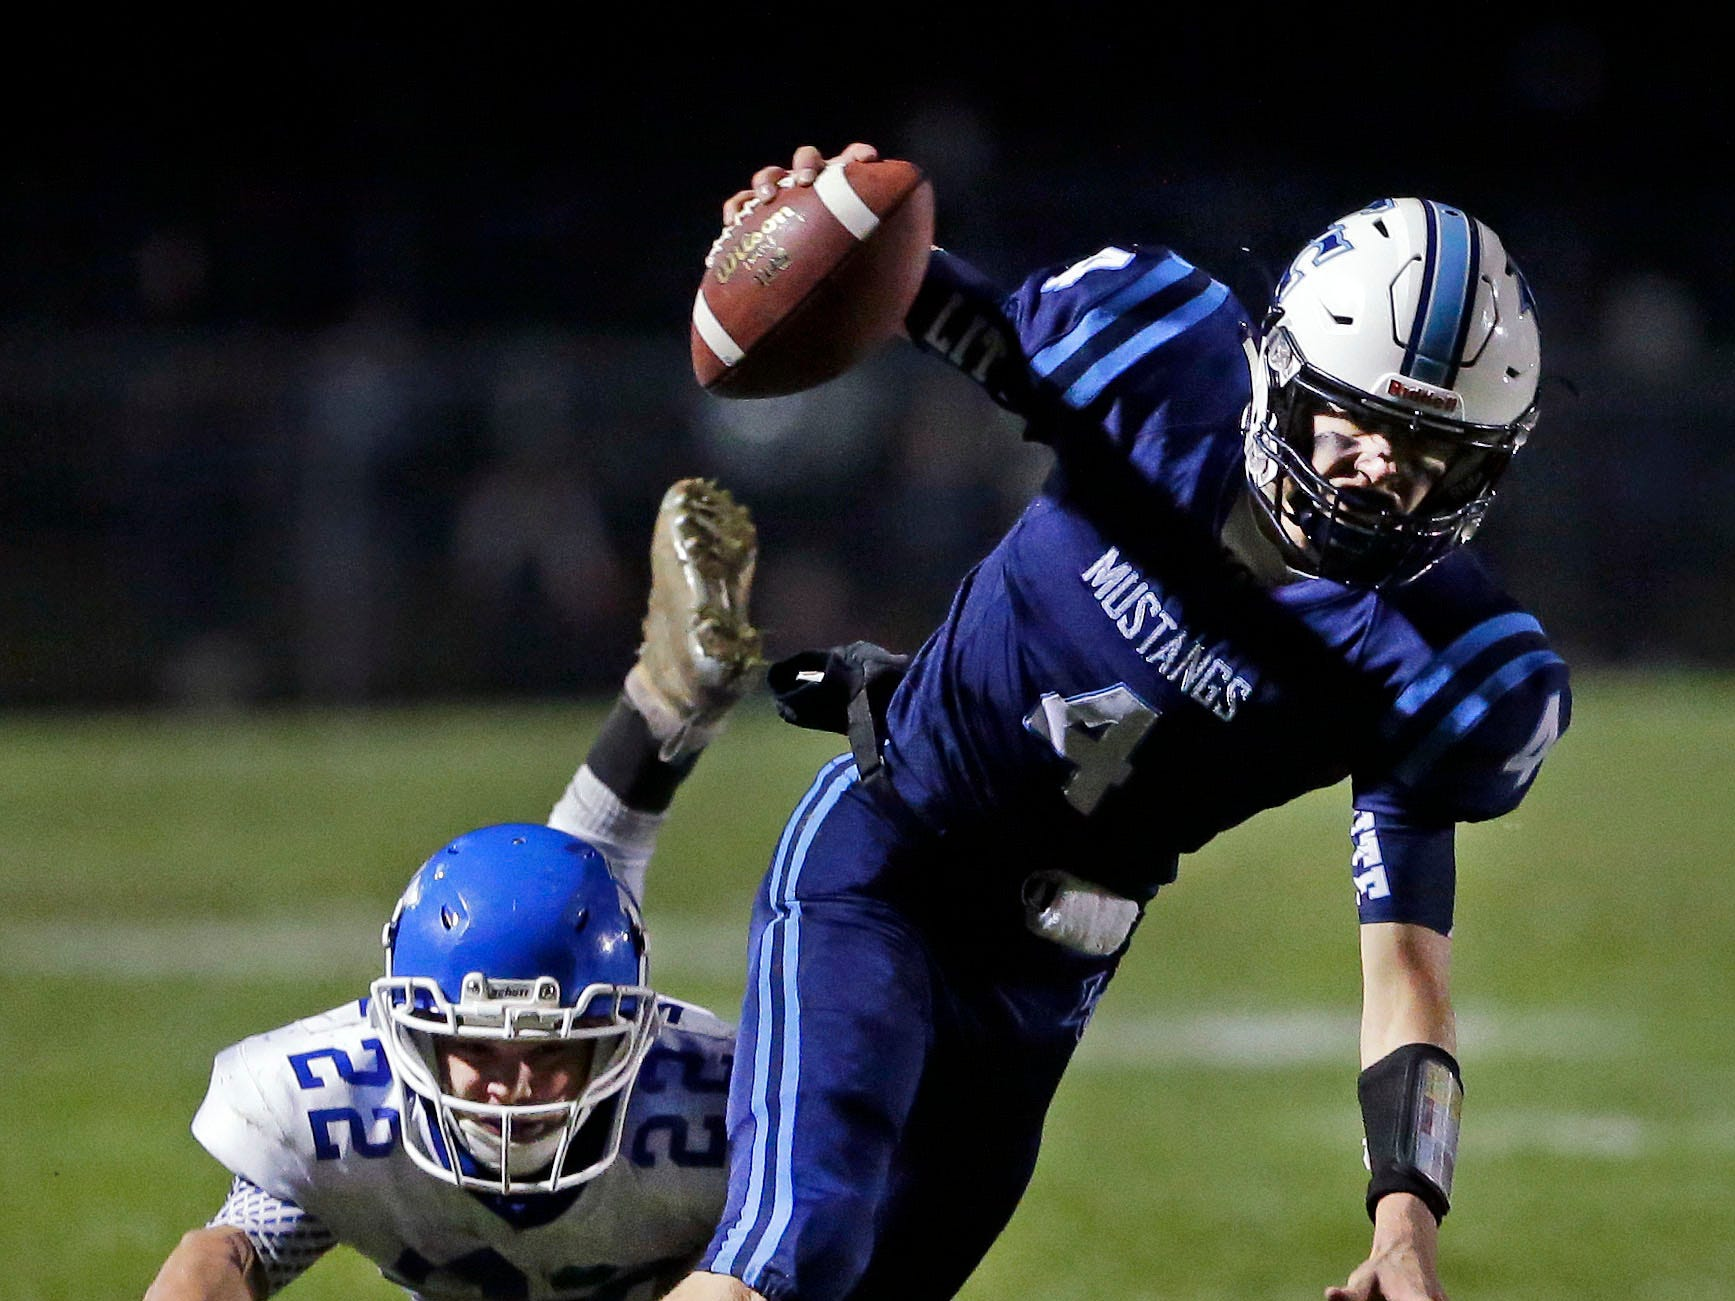 Quarterback Noah Mueller of Little Chute scrambles with the ball as he is tackled by Walker Vande Hey of Wrightstown in a WIAA Division 4 Level 3 playoff game Friday, November 2, 2018, at Fitzpatrick Field in Little Chute, Wis.